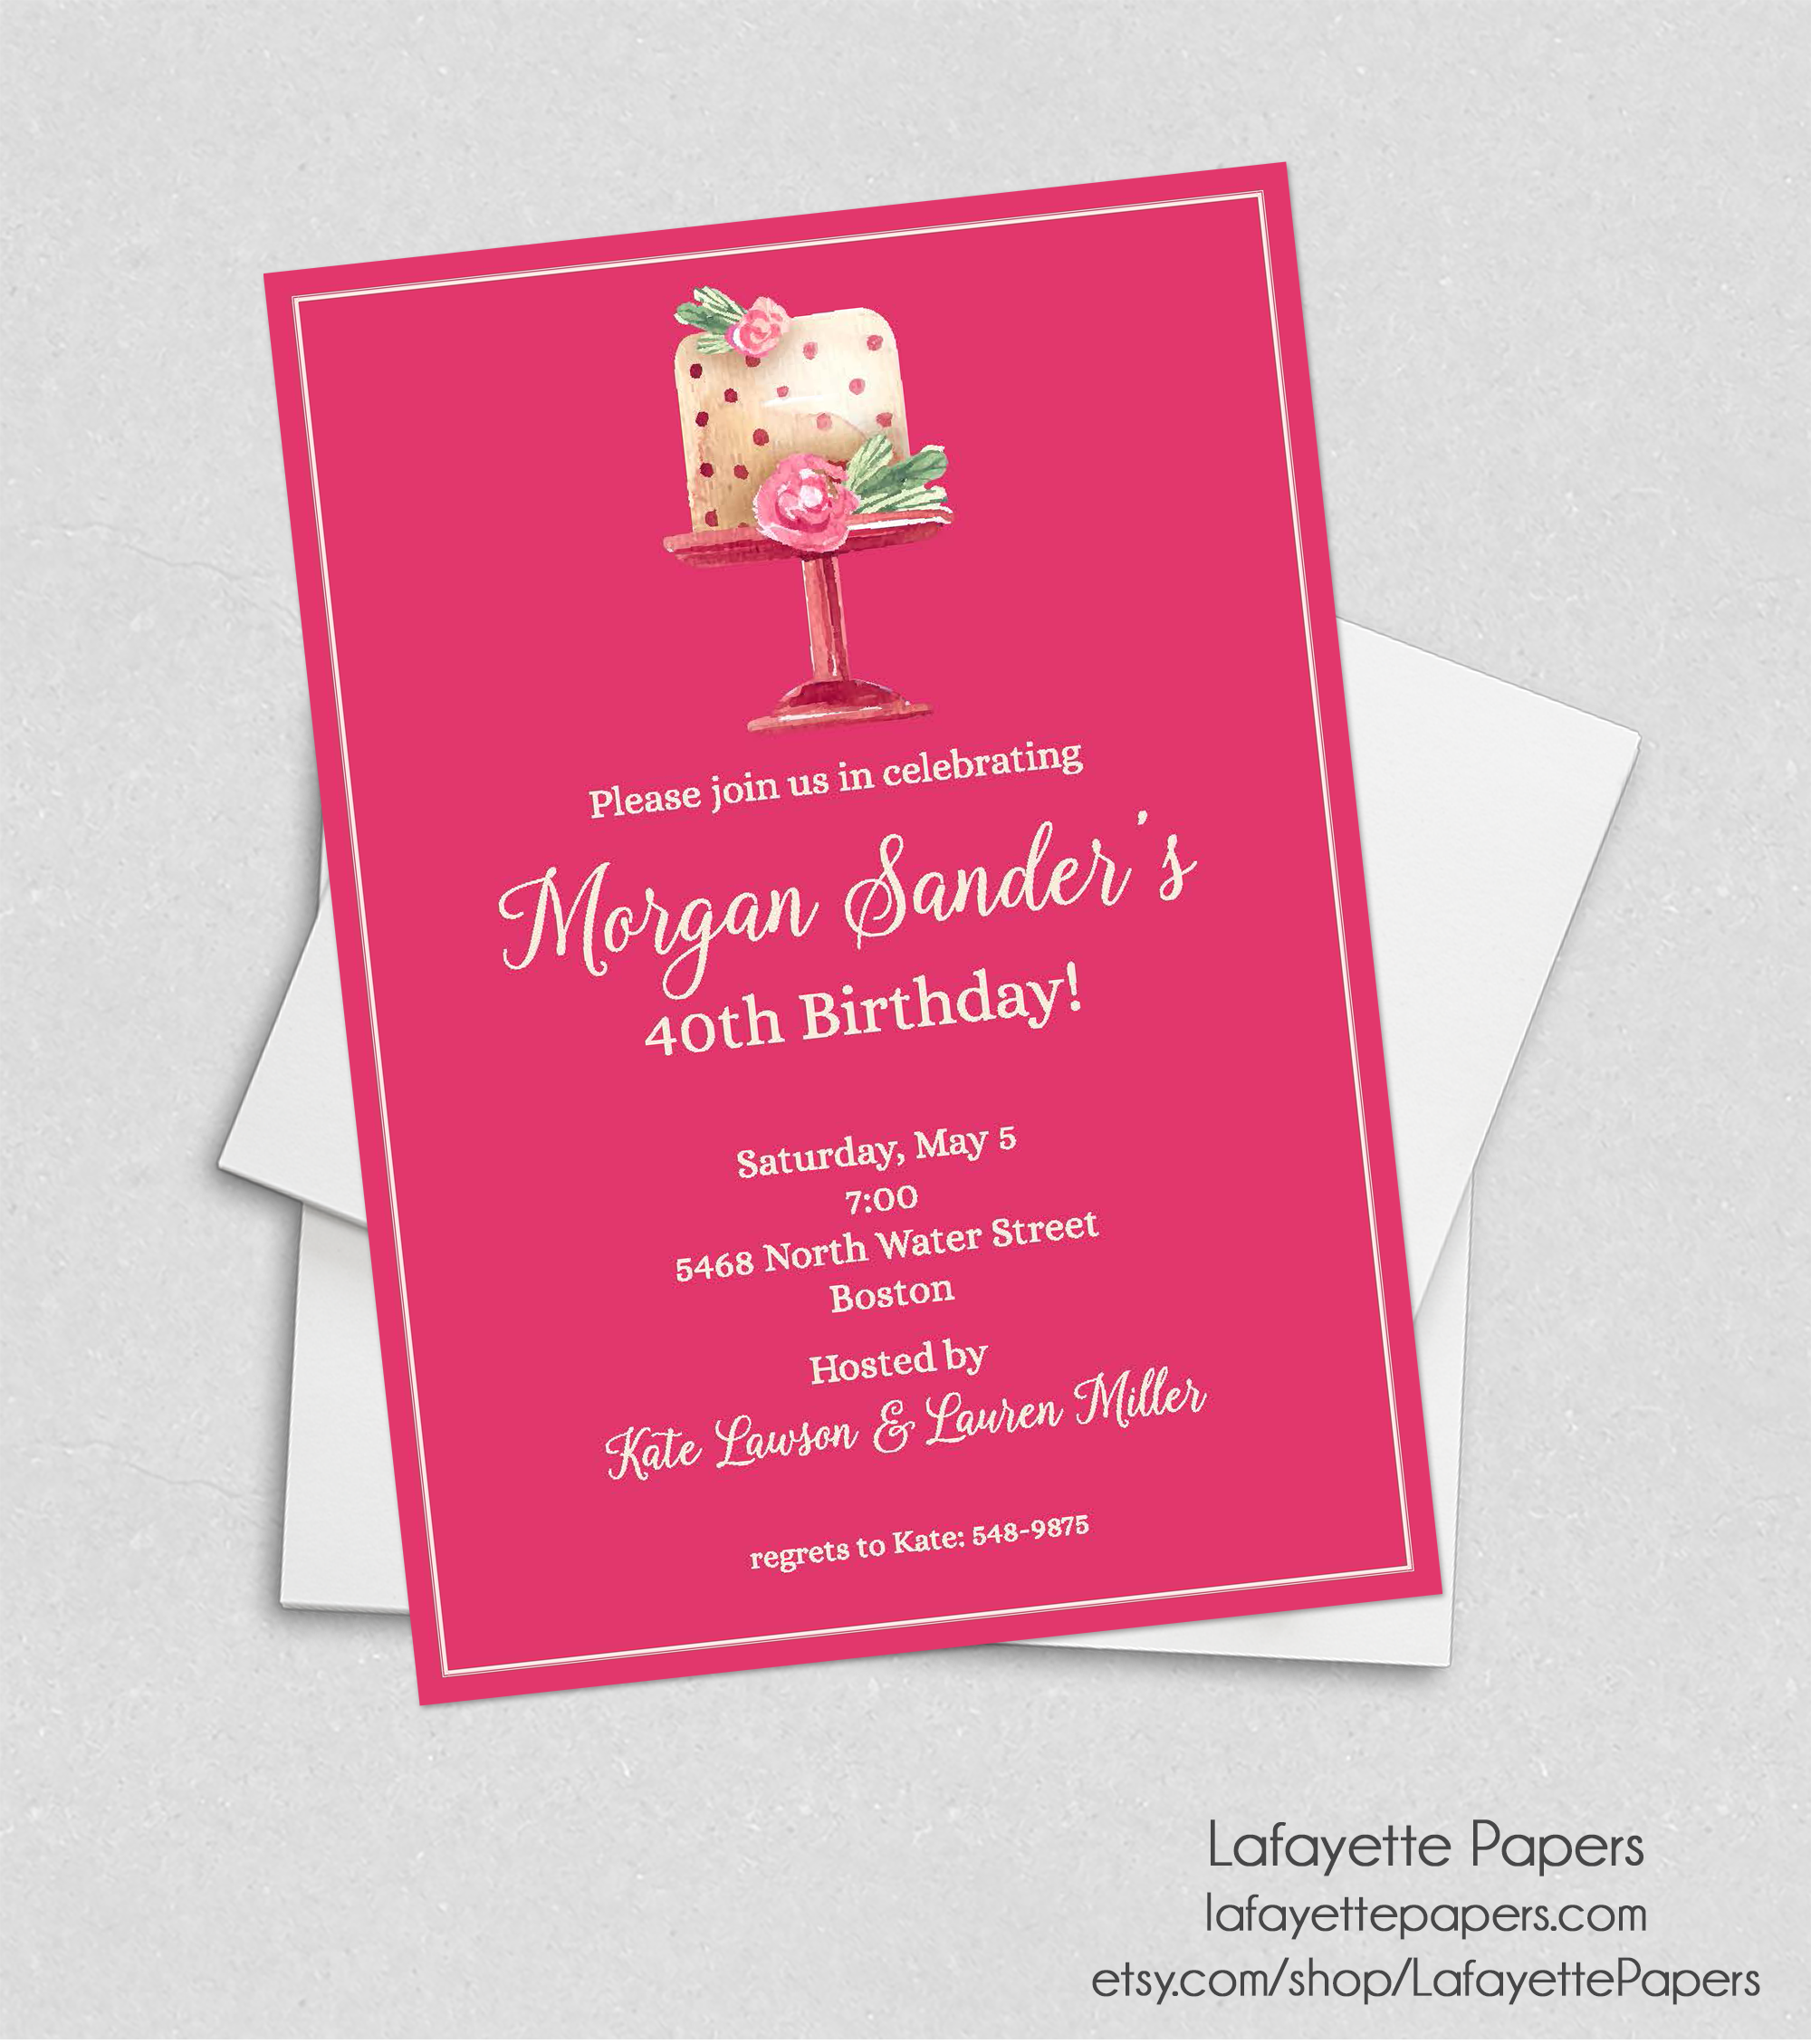 Lafayette Papers Birthday Party Invitation